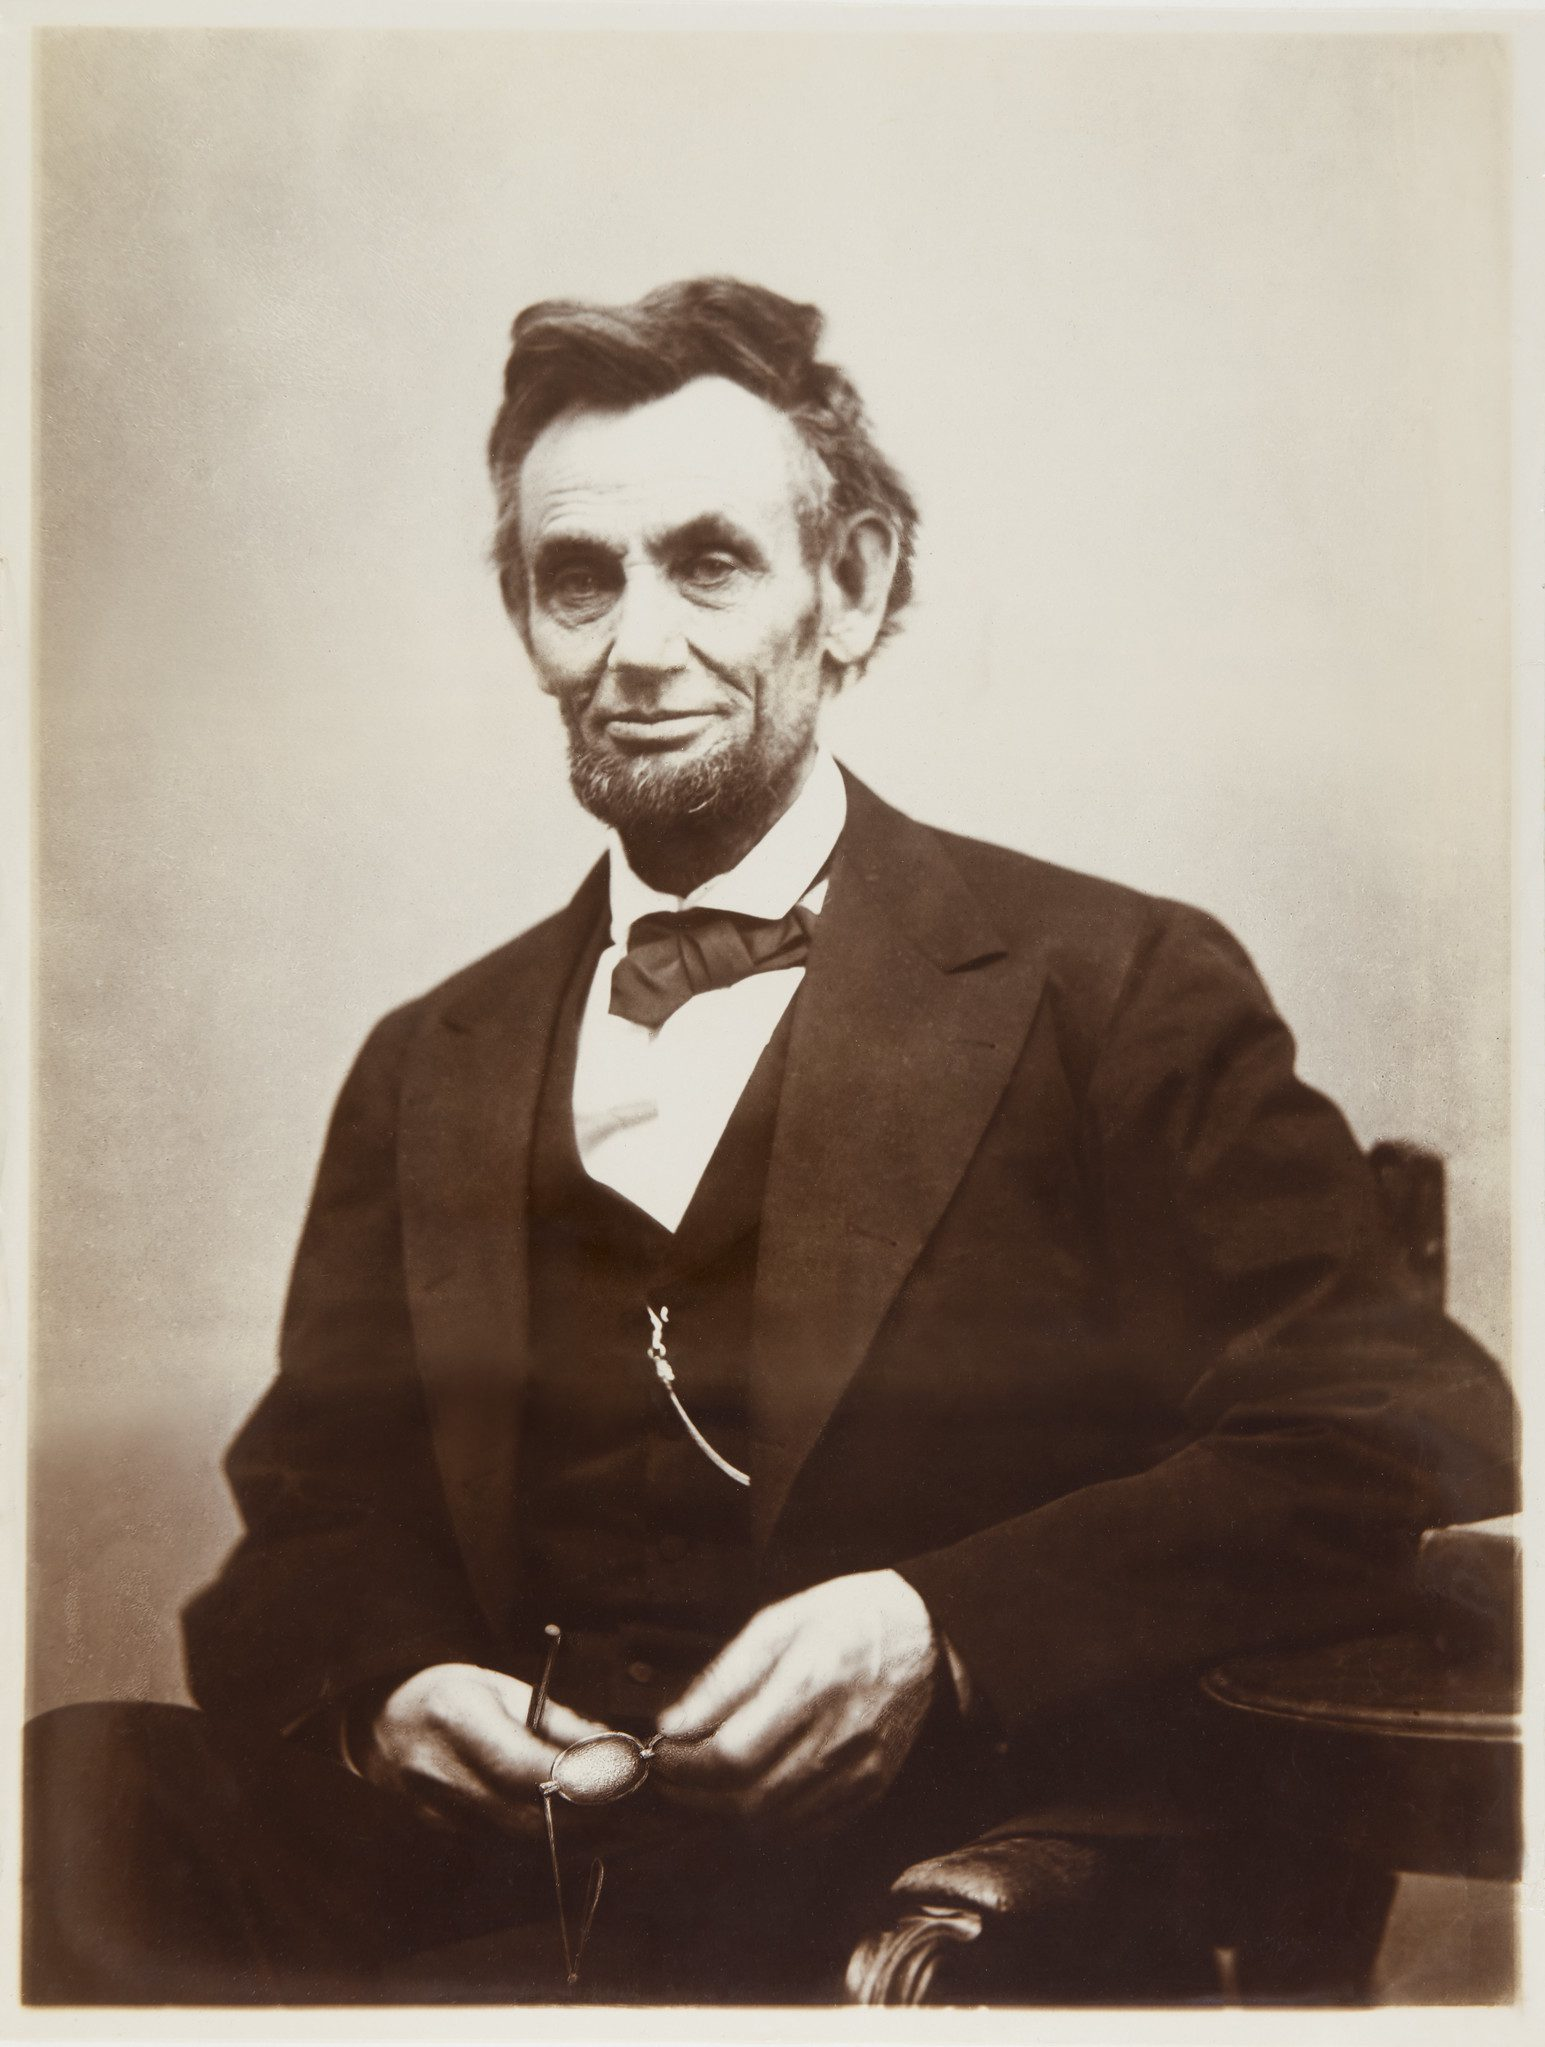 Abraham Lincoln Prediction of his own death